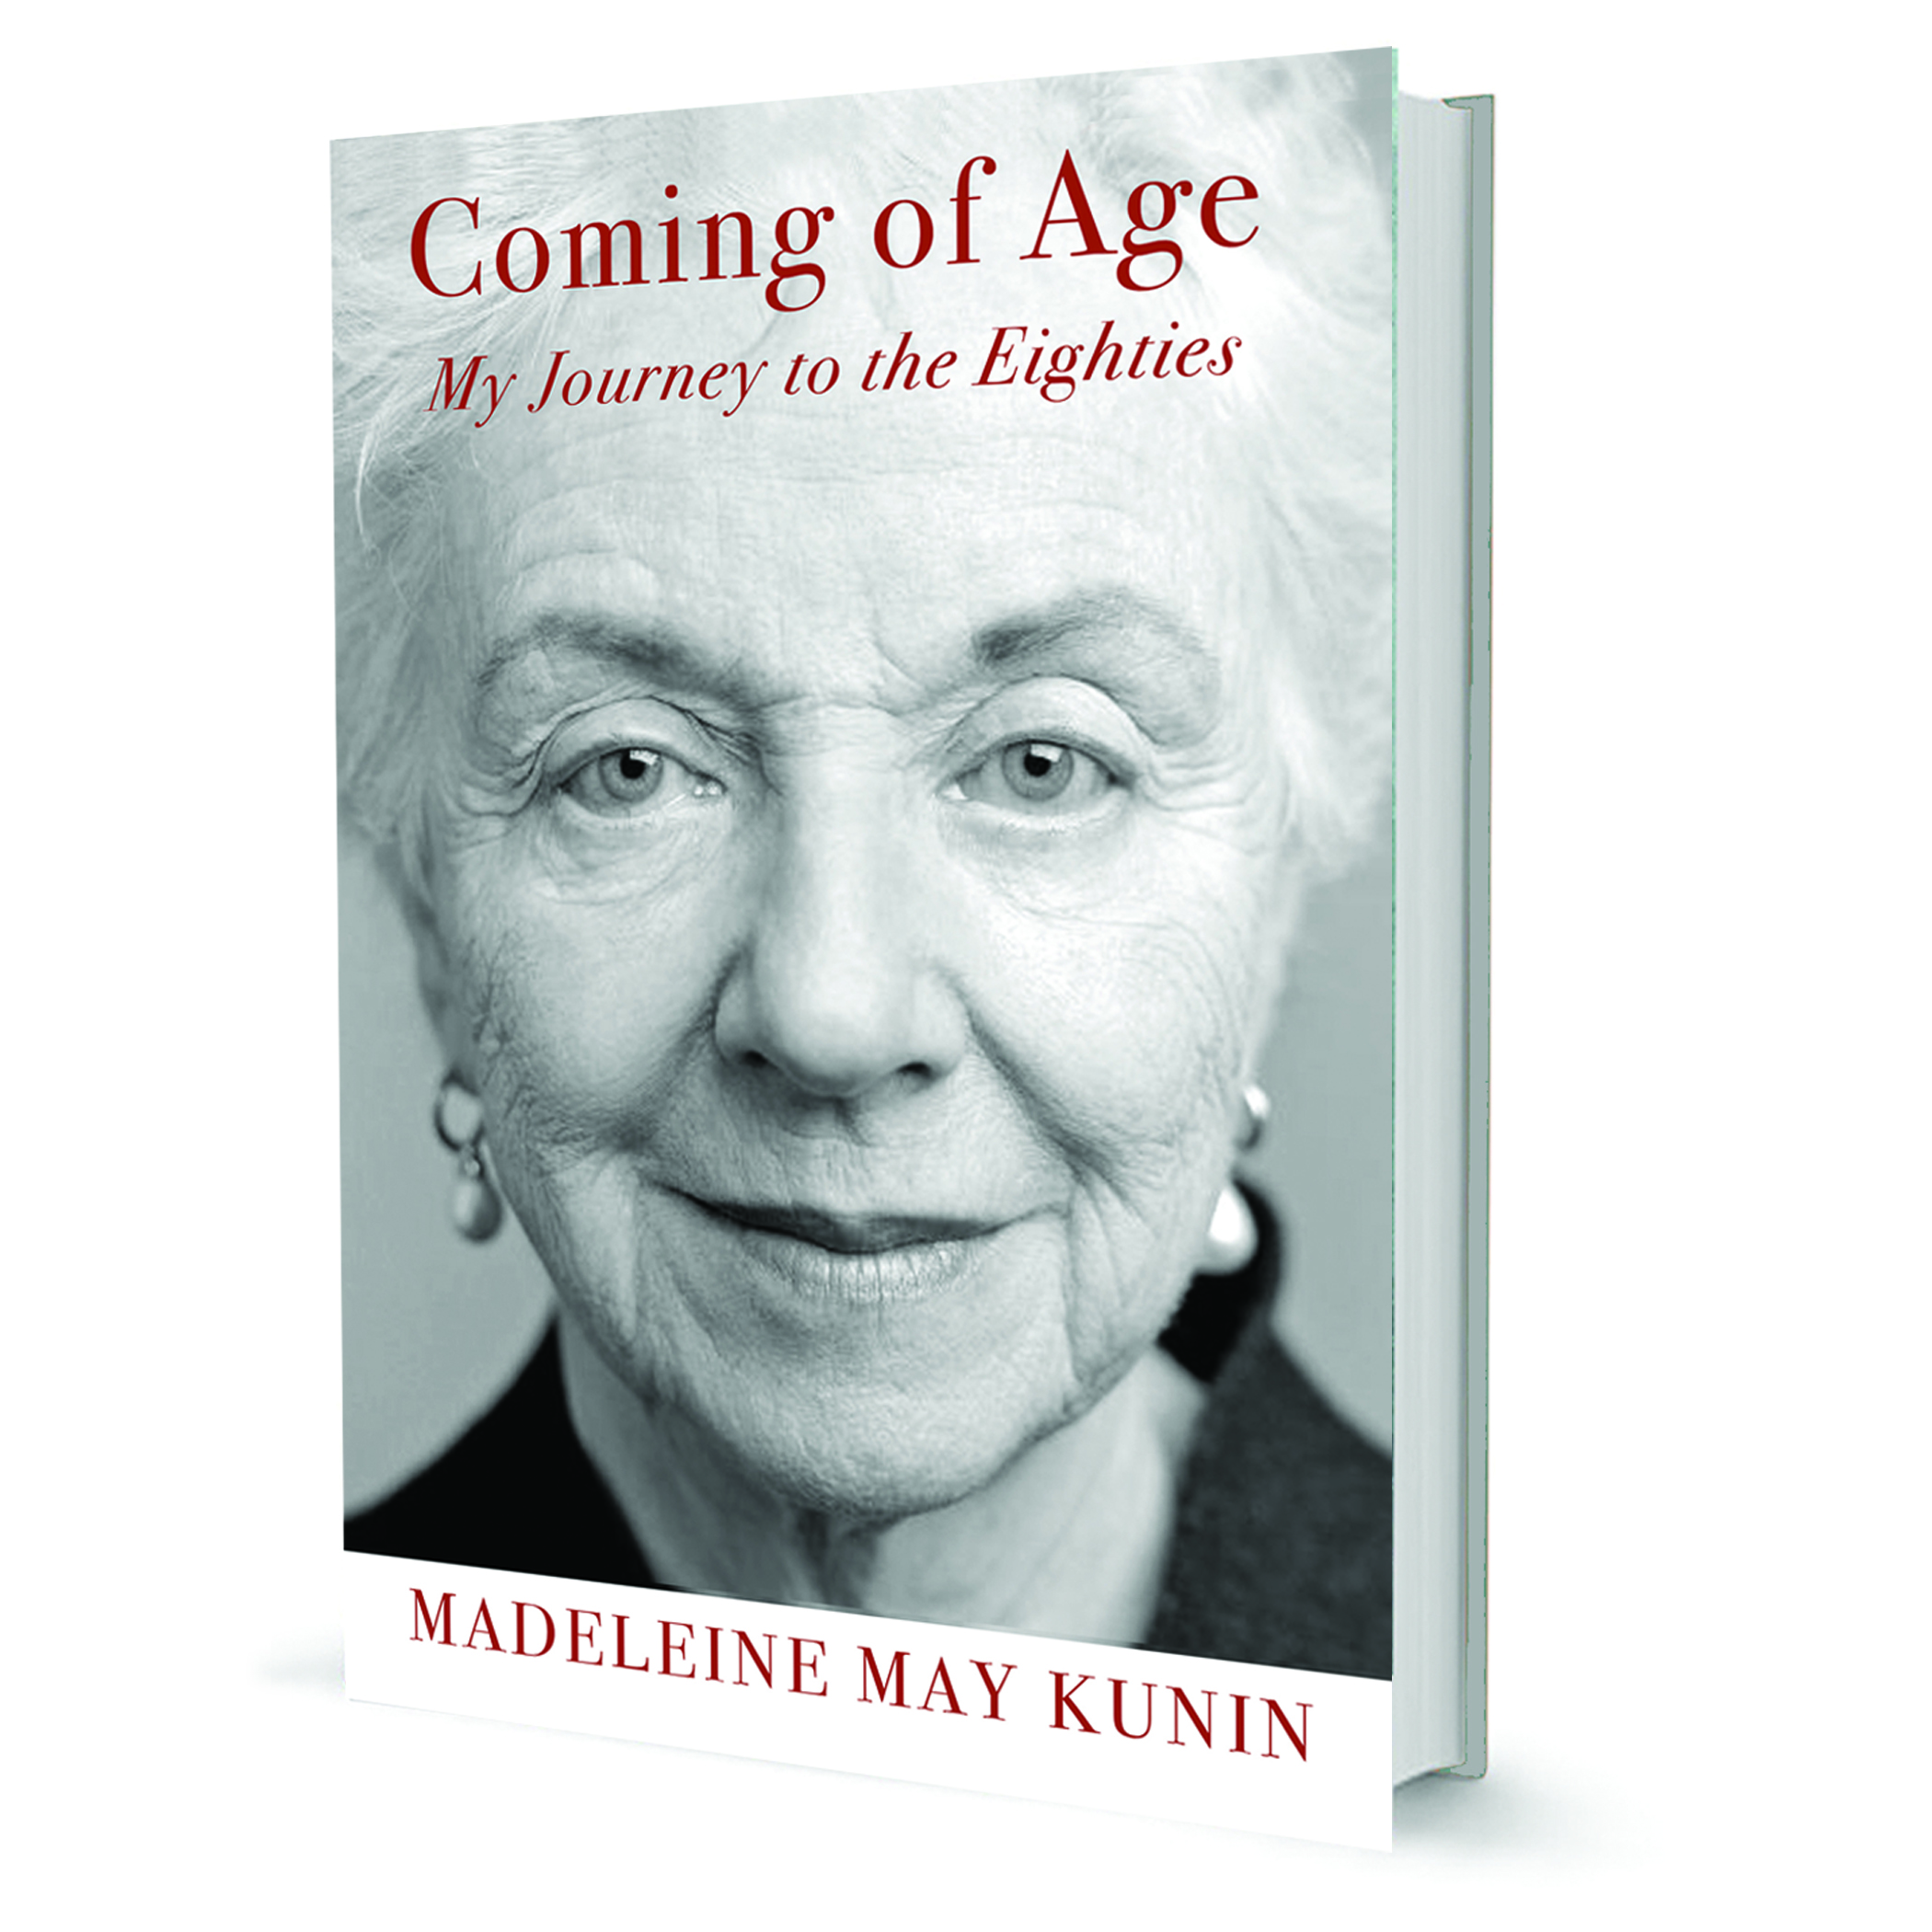 About the book - Green Writers Press is thrilled to announce the publication of Coming-of-Age: My Journey to the Eighties, a provocative and inspiring memoir from a remarkable woman. Thirty-four years ago, Madeleine Kunin became the first woman to be elected governor of Vermont. This is her personal story.